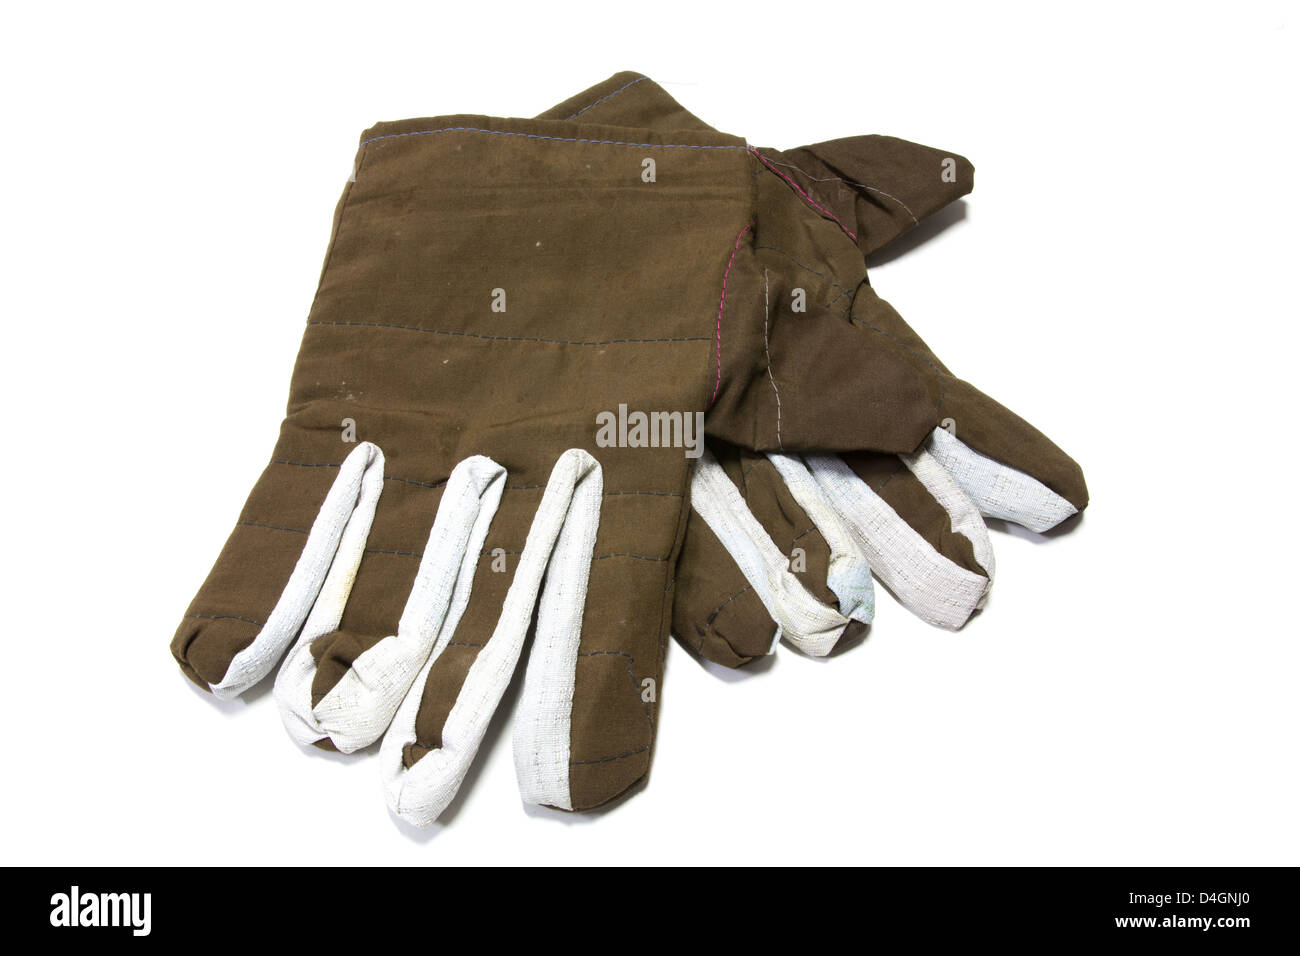 A pair of warm gloves in brown fabric for the winter on a white background into. - Stock Image